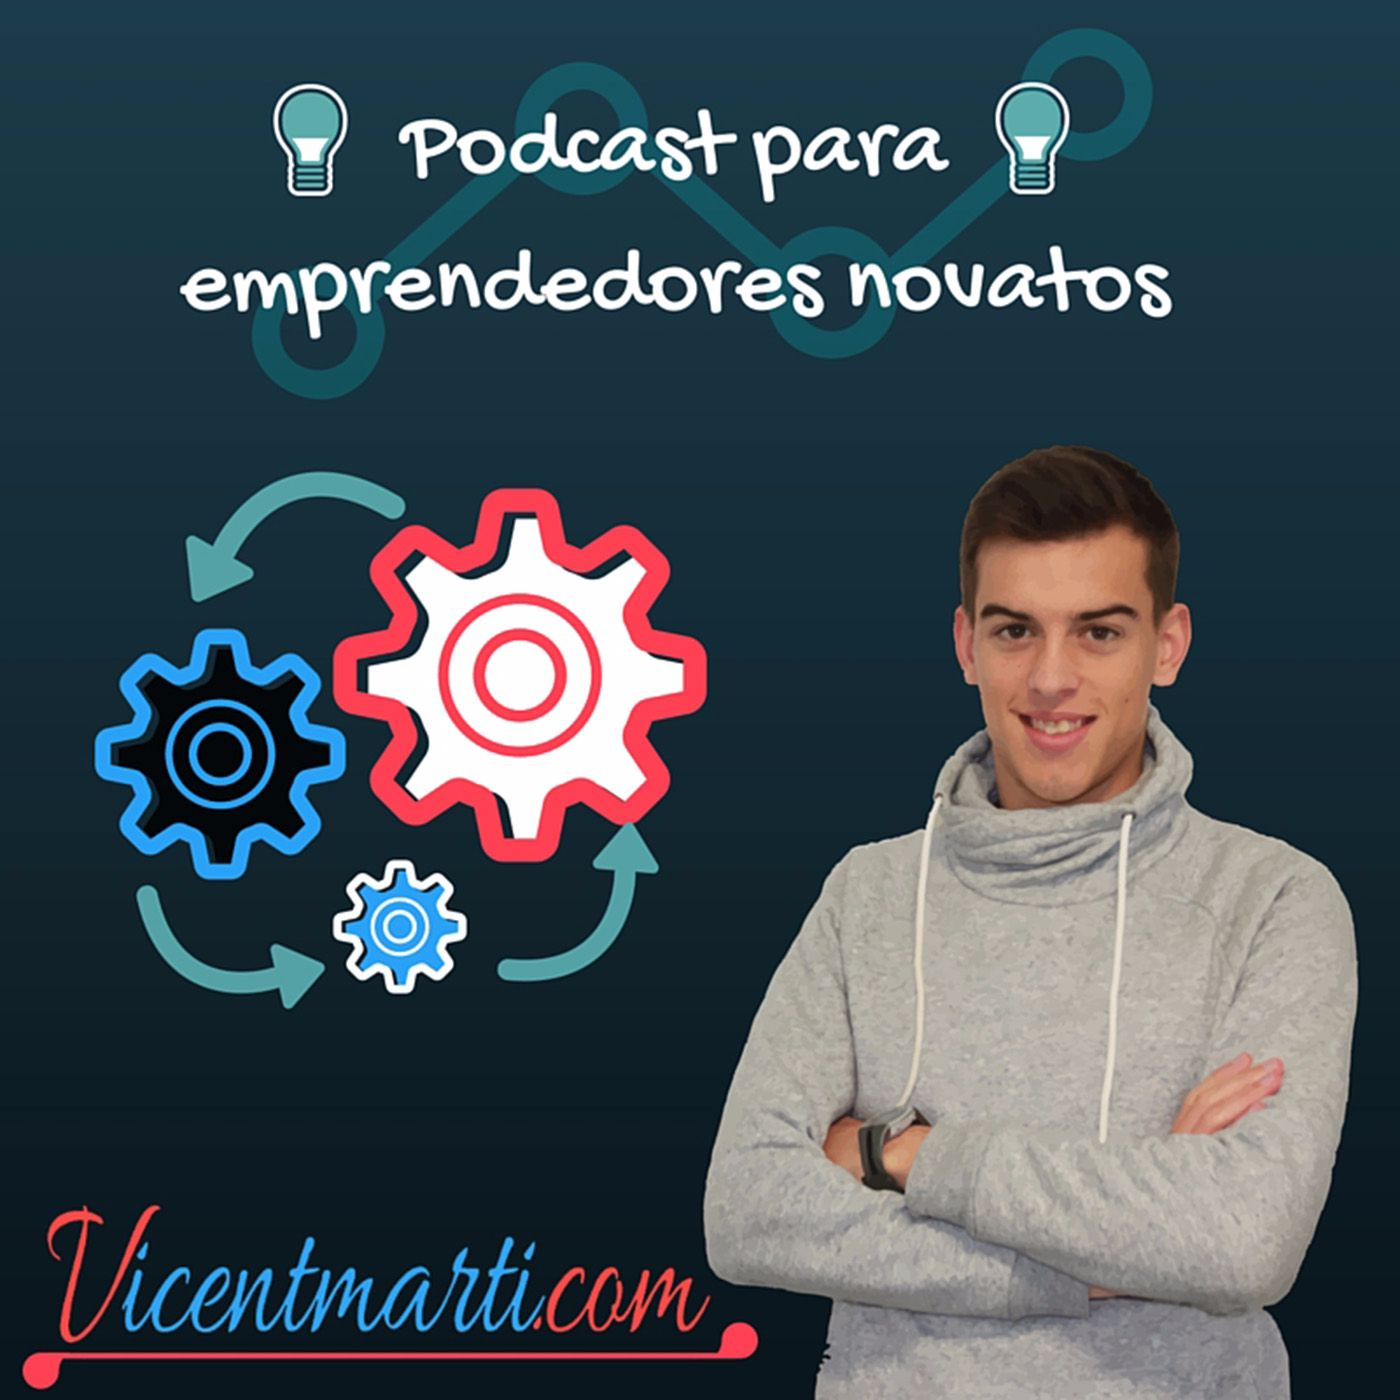 Podcast Para Emprendedores Novatos